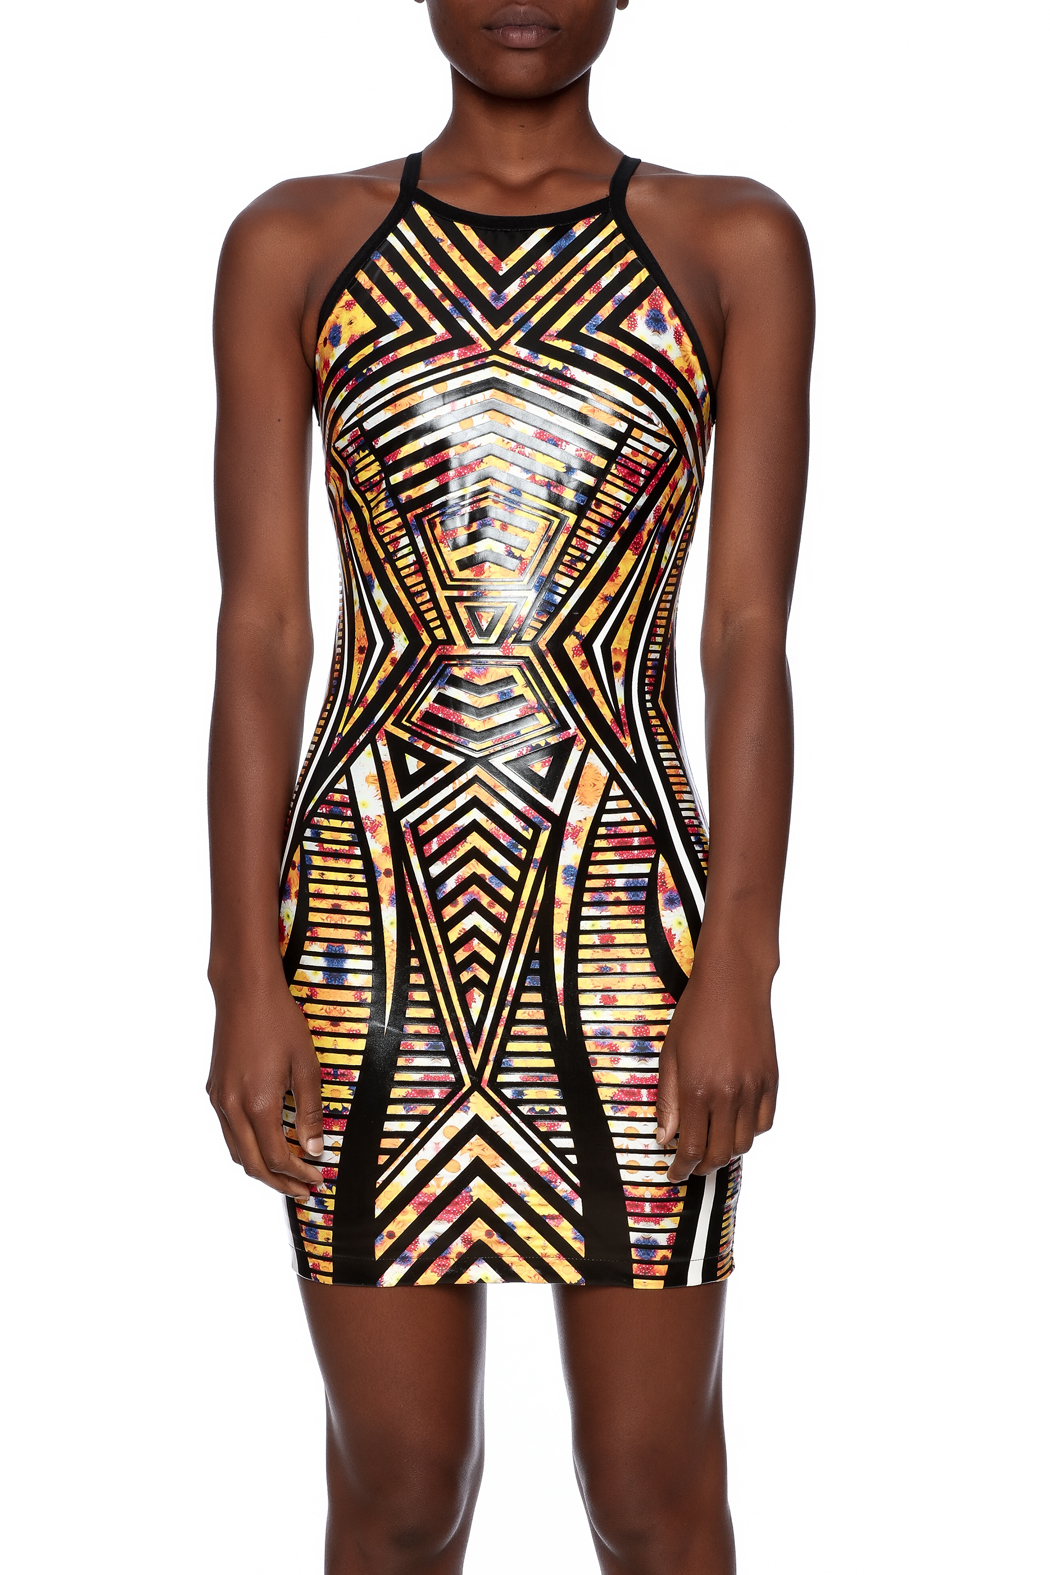 c1b3e54f158f68 Wow Couture Latex Bodycon Dress from Michigan by Lifted Boutique ...